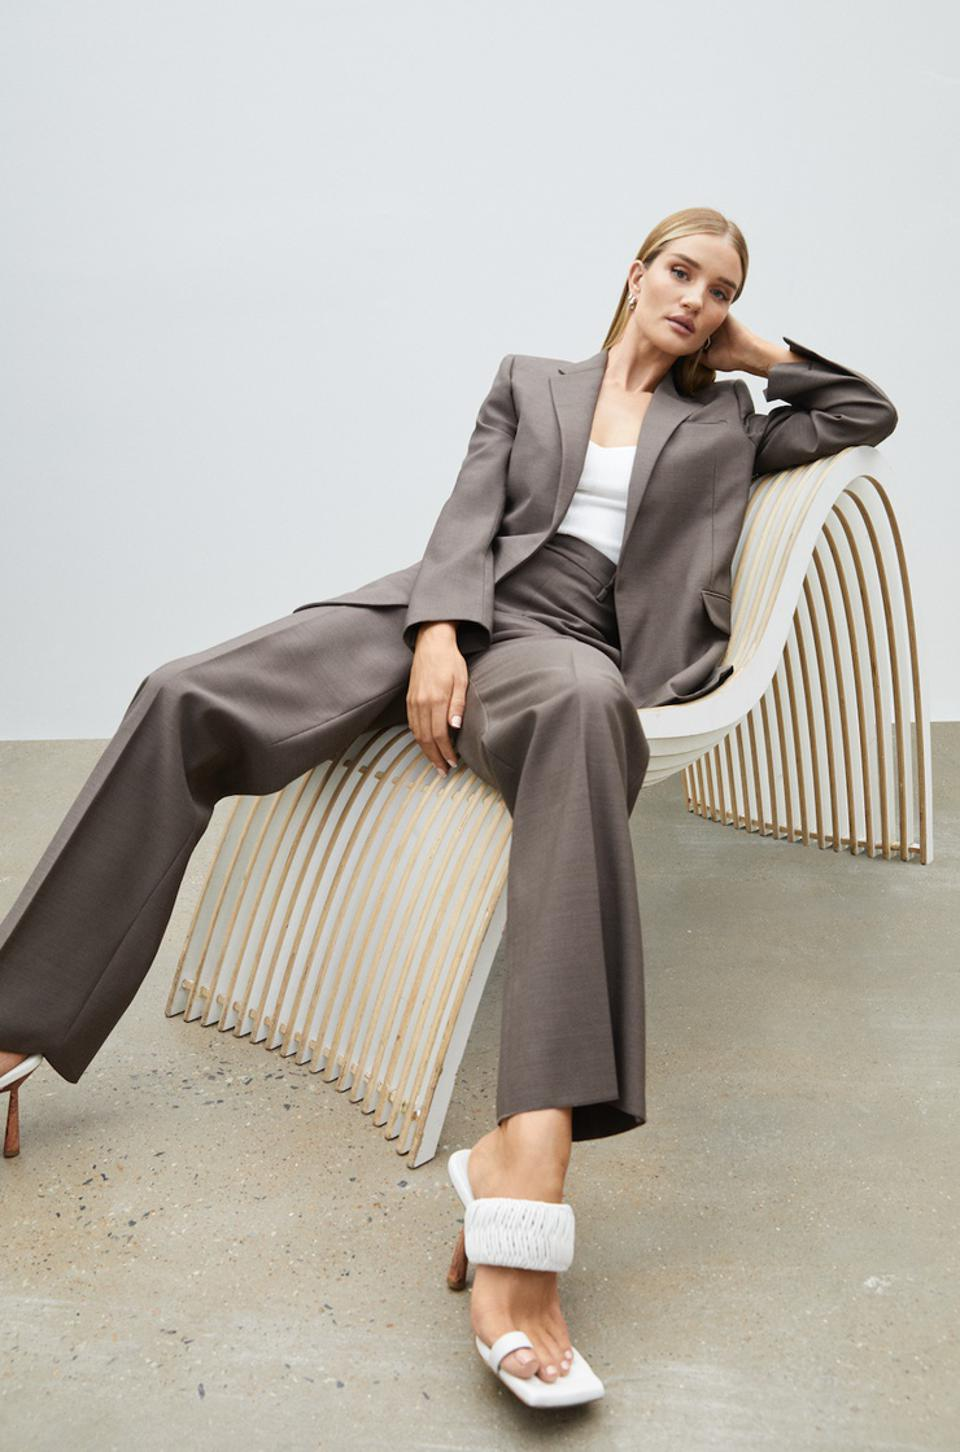 Model and entrepreneur, Rosie Huntington-Whiteley, is debuting her first footwear collecti